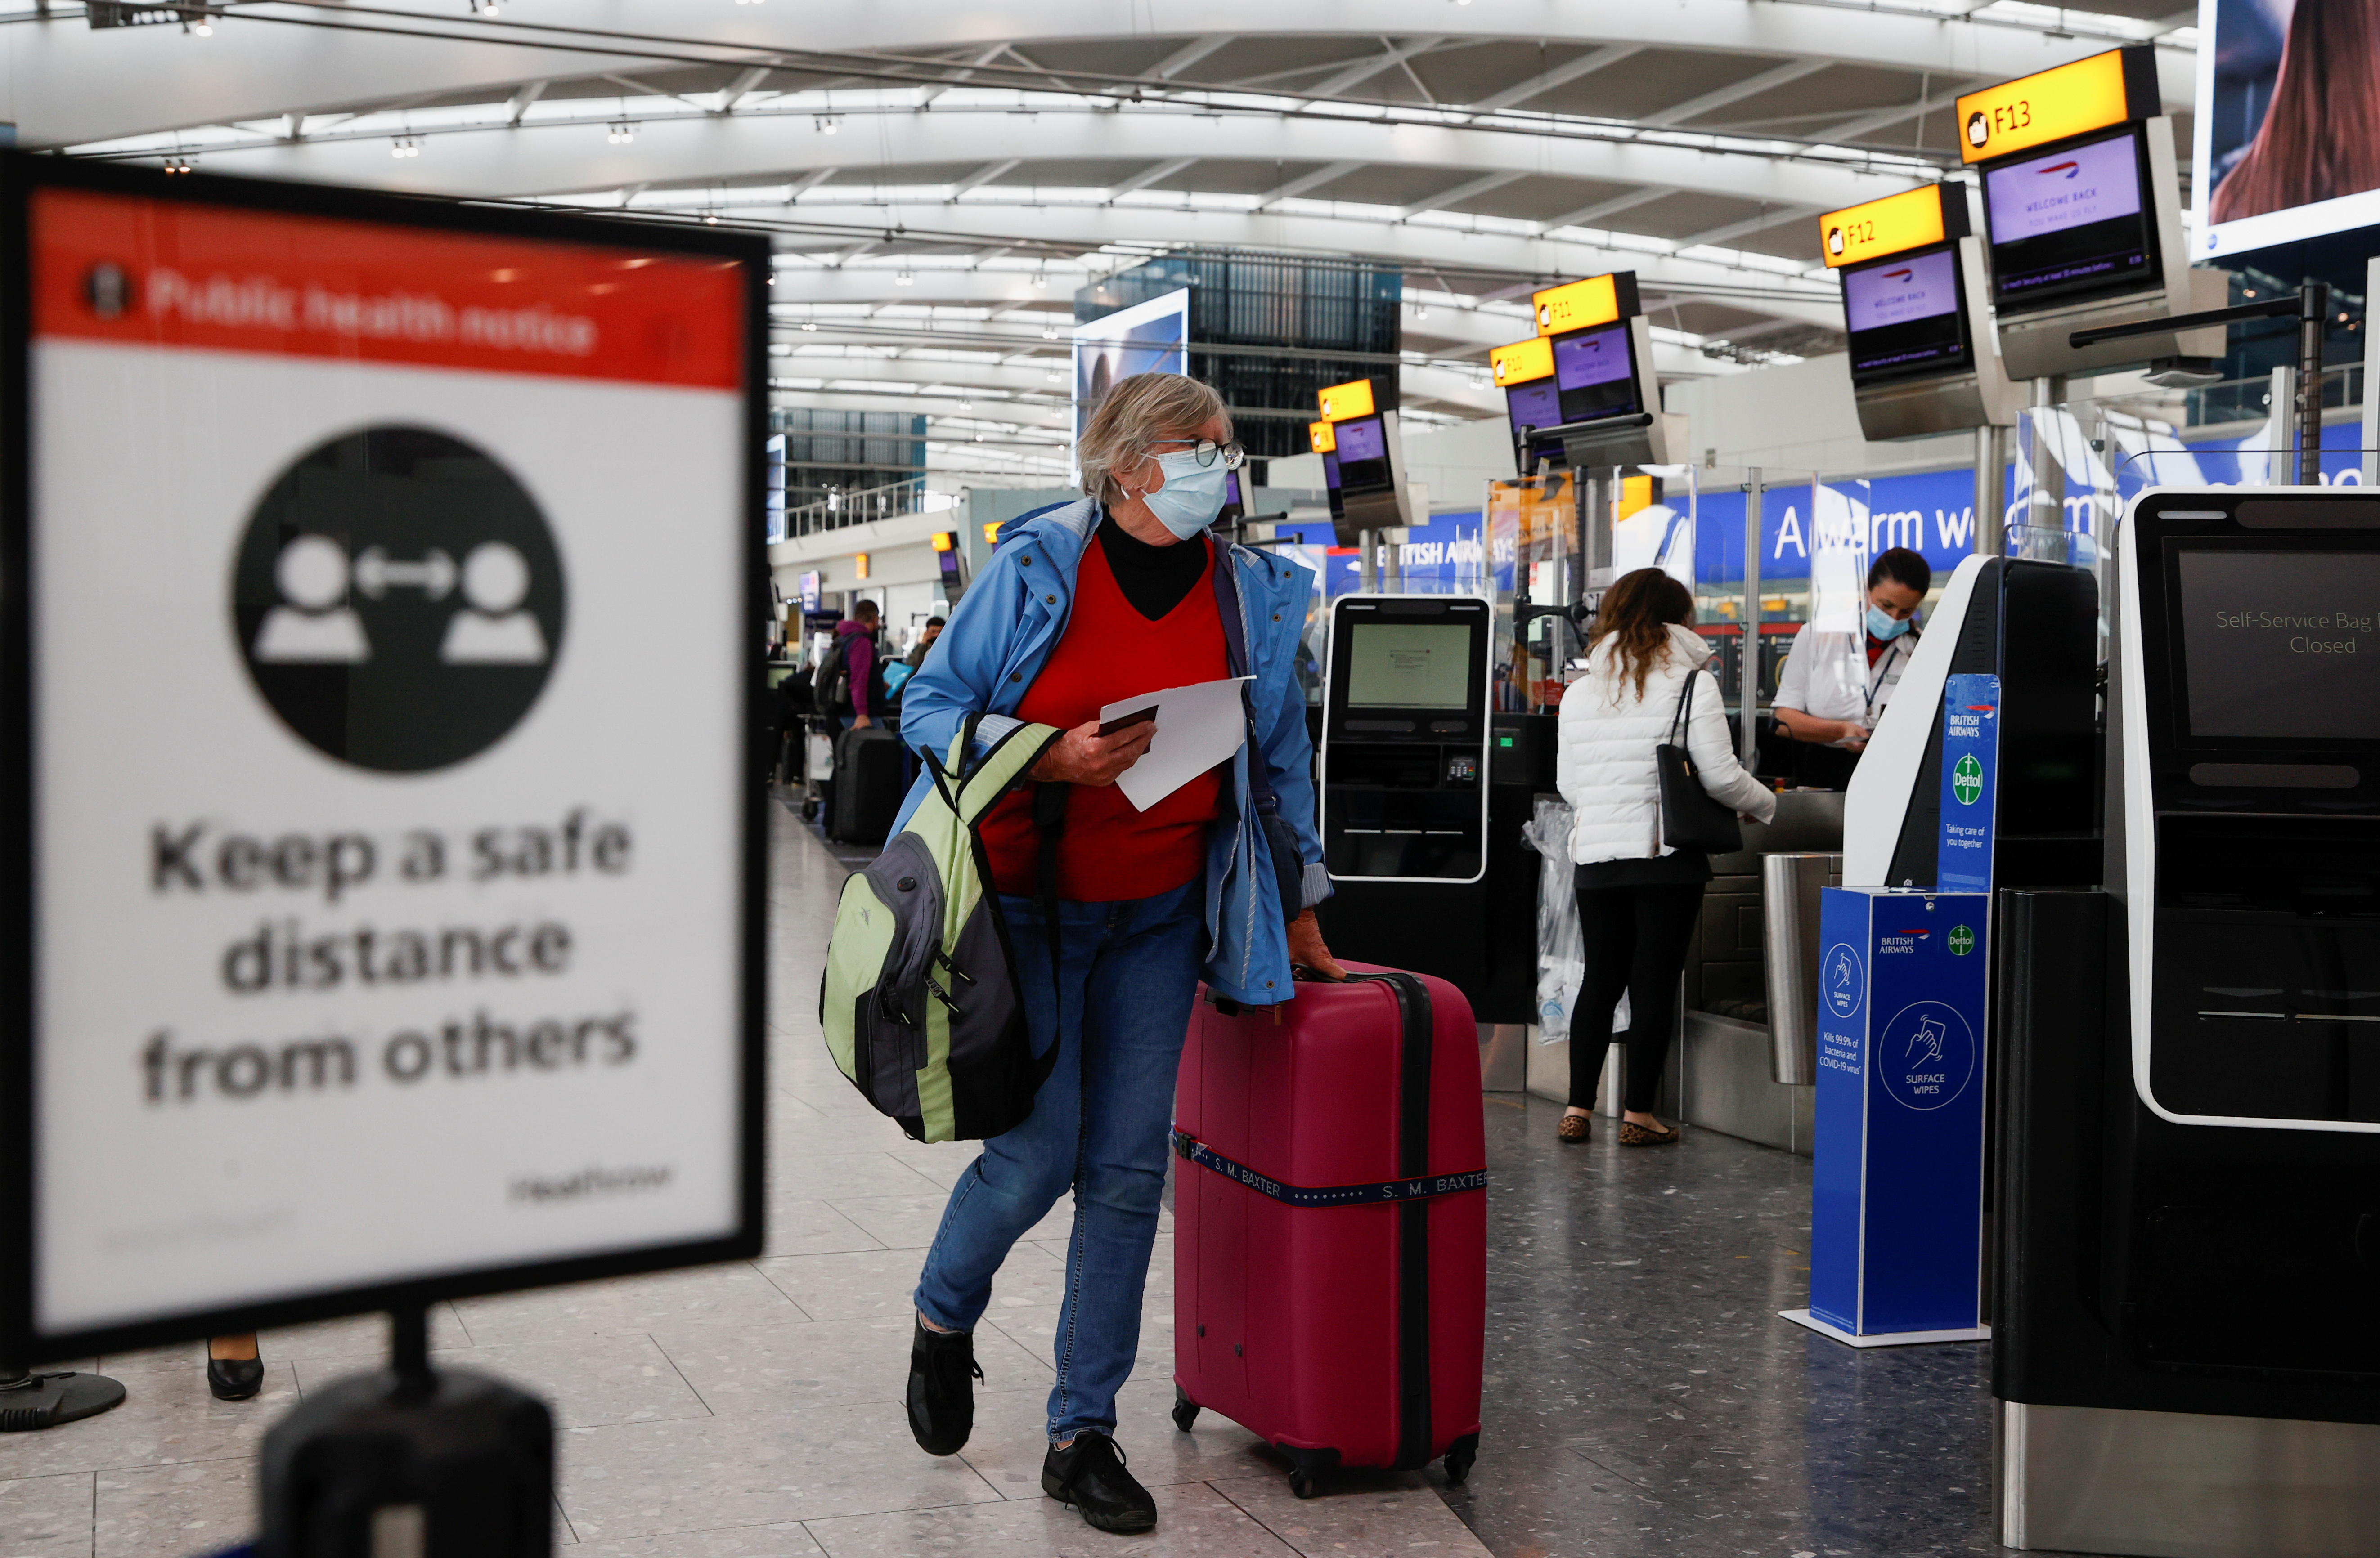 A passenger walks with her luggage at the Terminal 5 departures area at Heathrow Airport in London, Britain, May 17, 2021. REUTERS/John Sibley